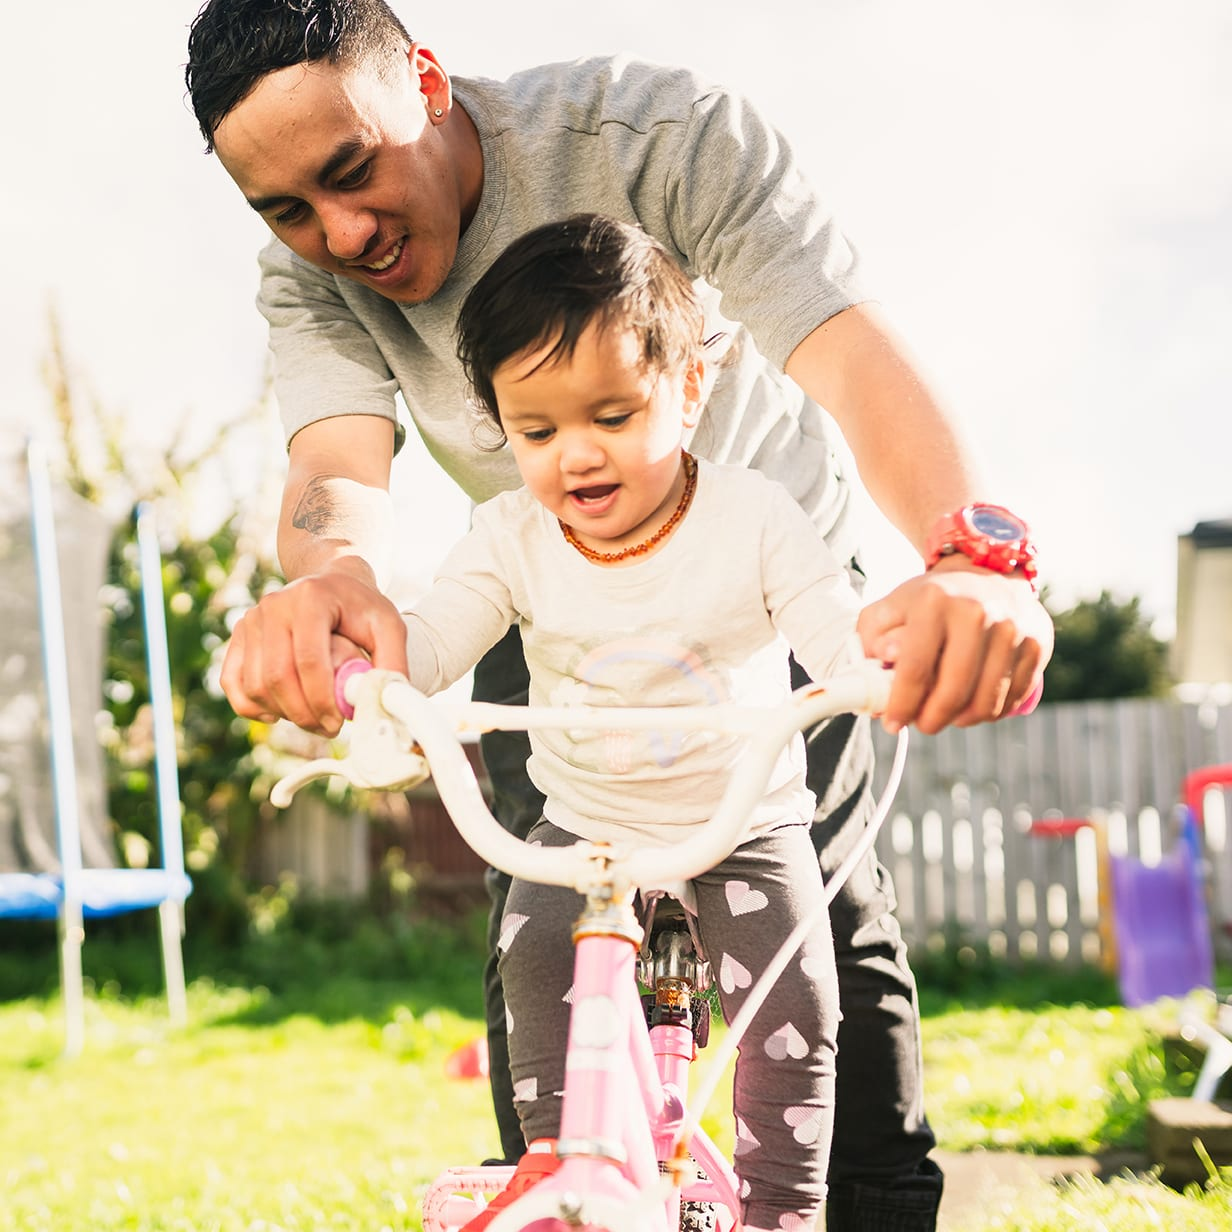 Maori father helping her daughter to ride bicycle in backyard.